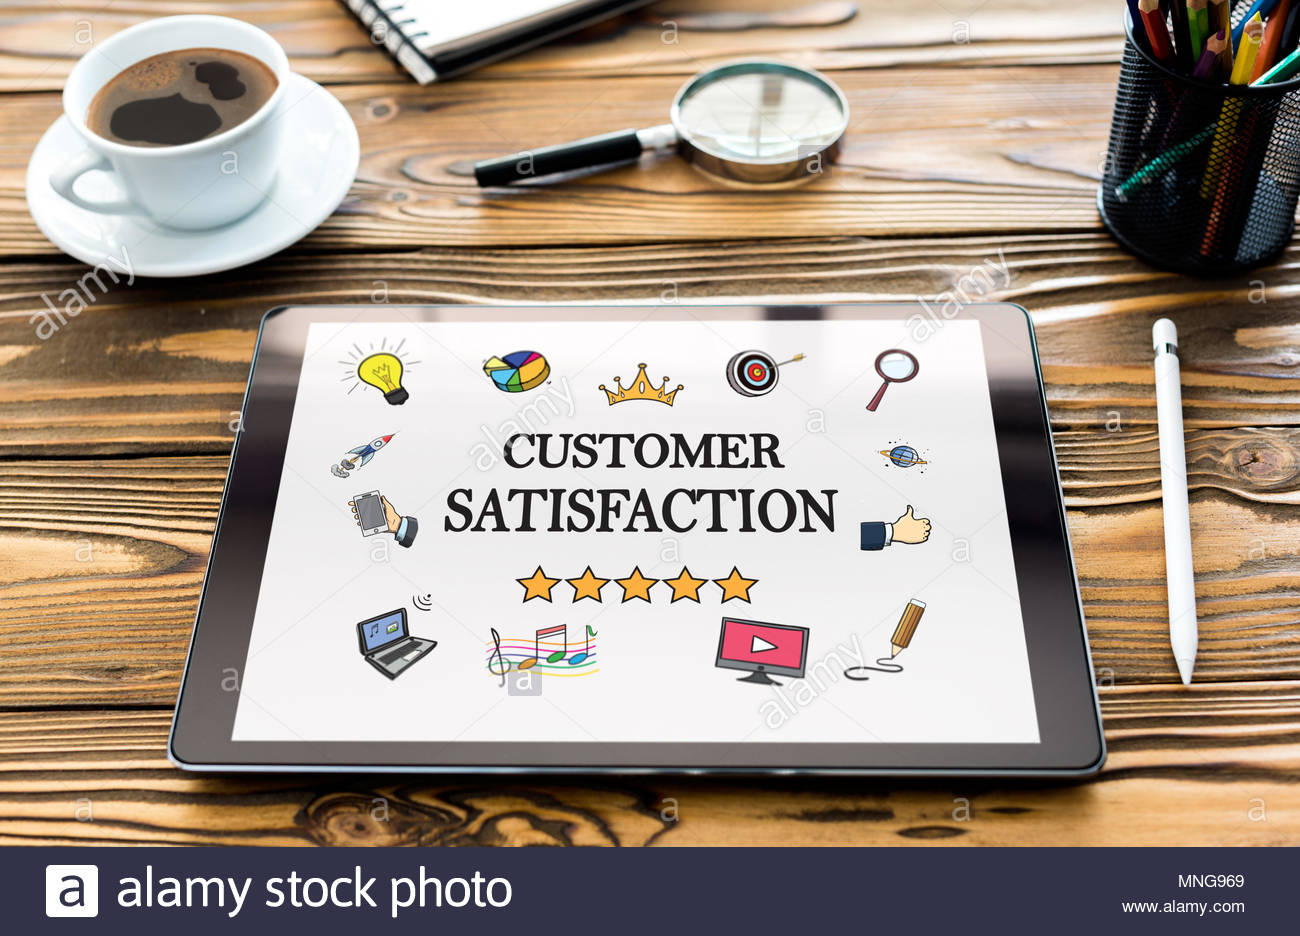 Customer Satisfaction Concept On Digital Tablet Screen - Stock Image